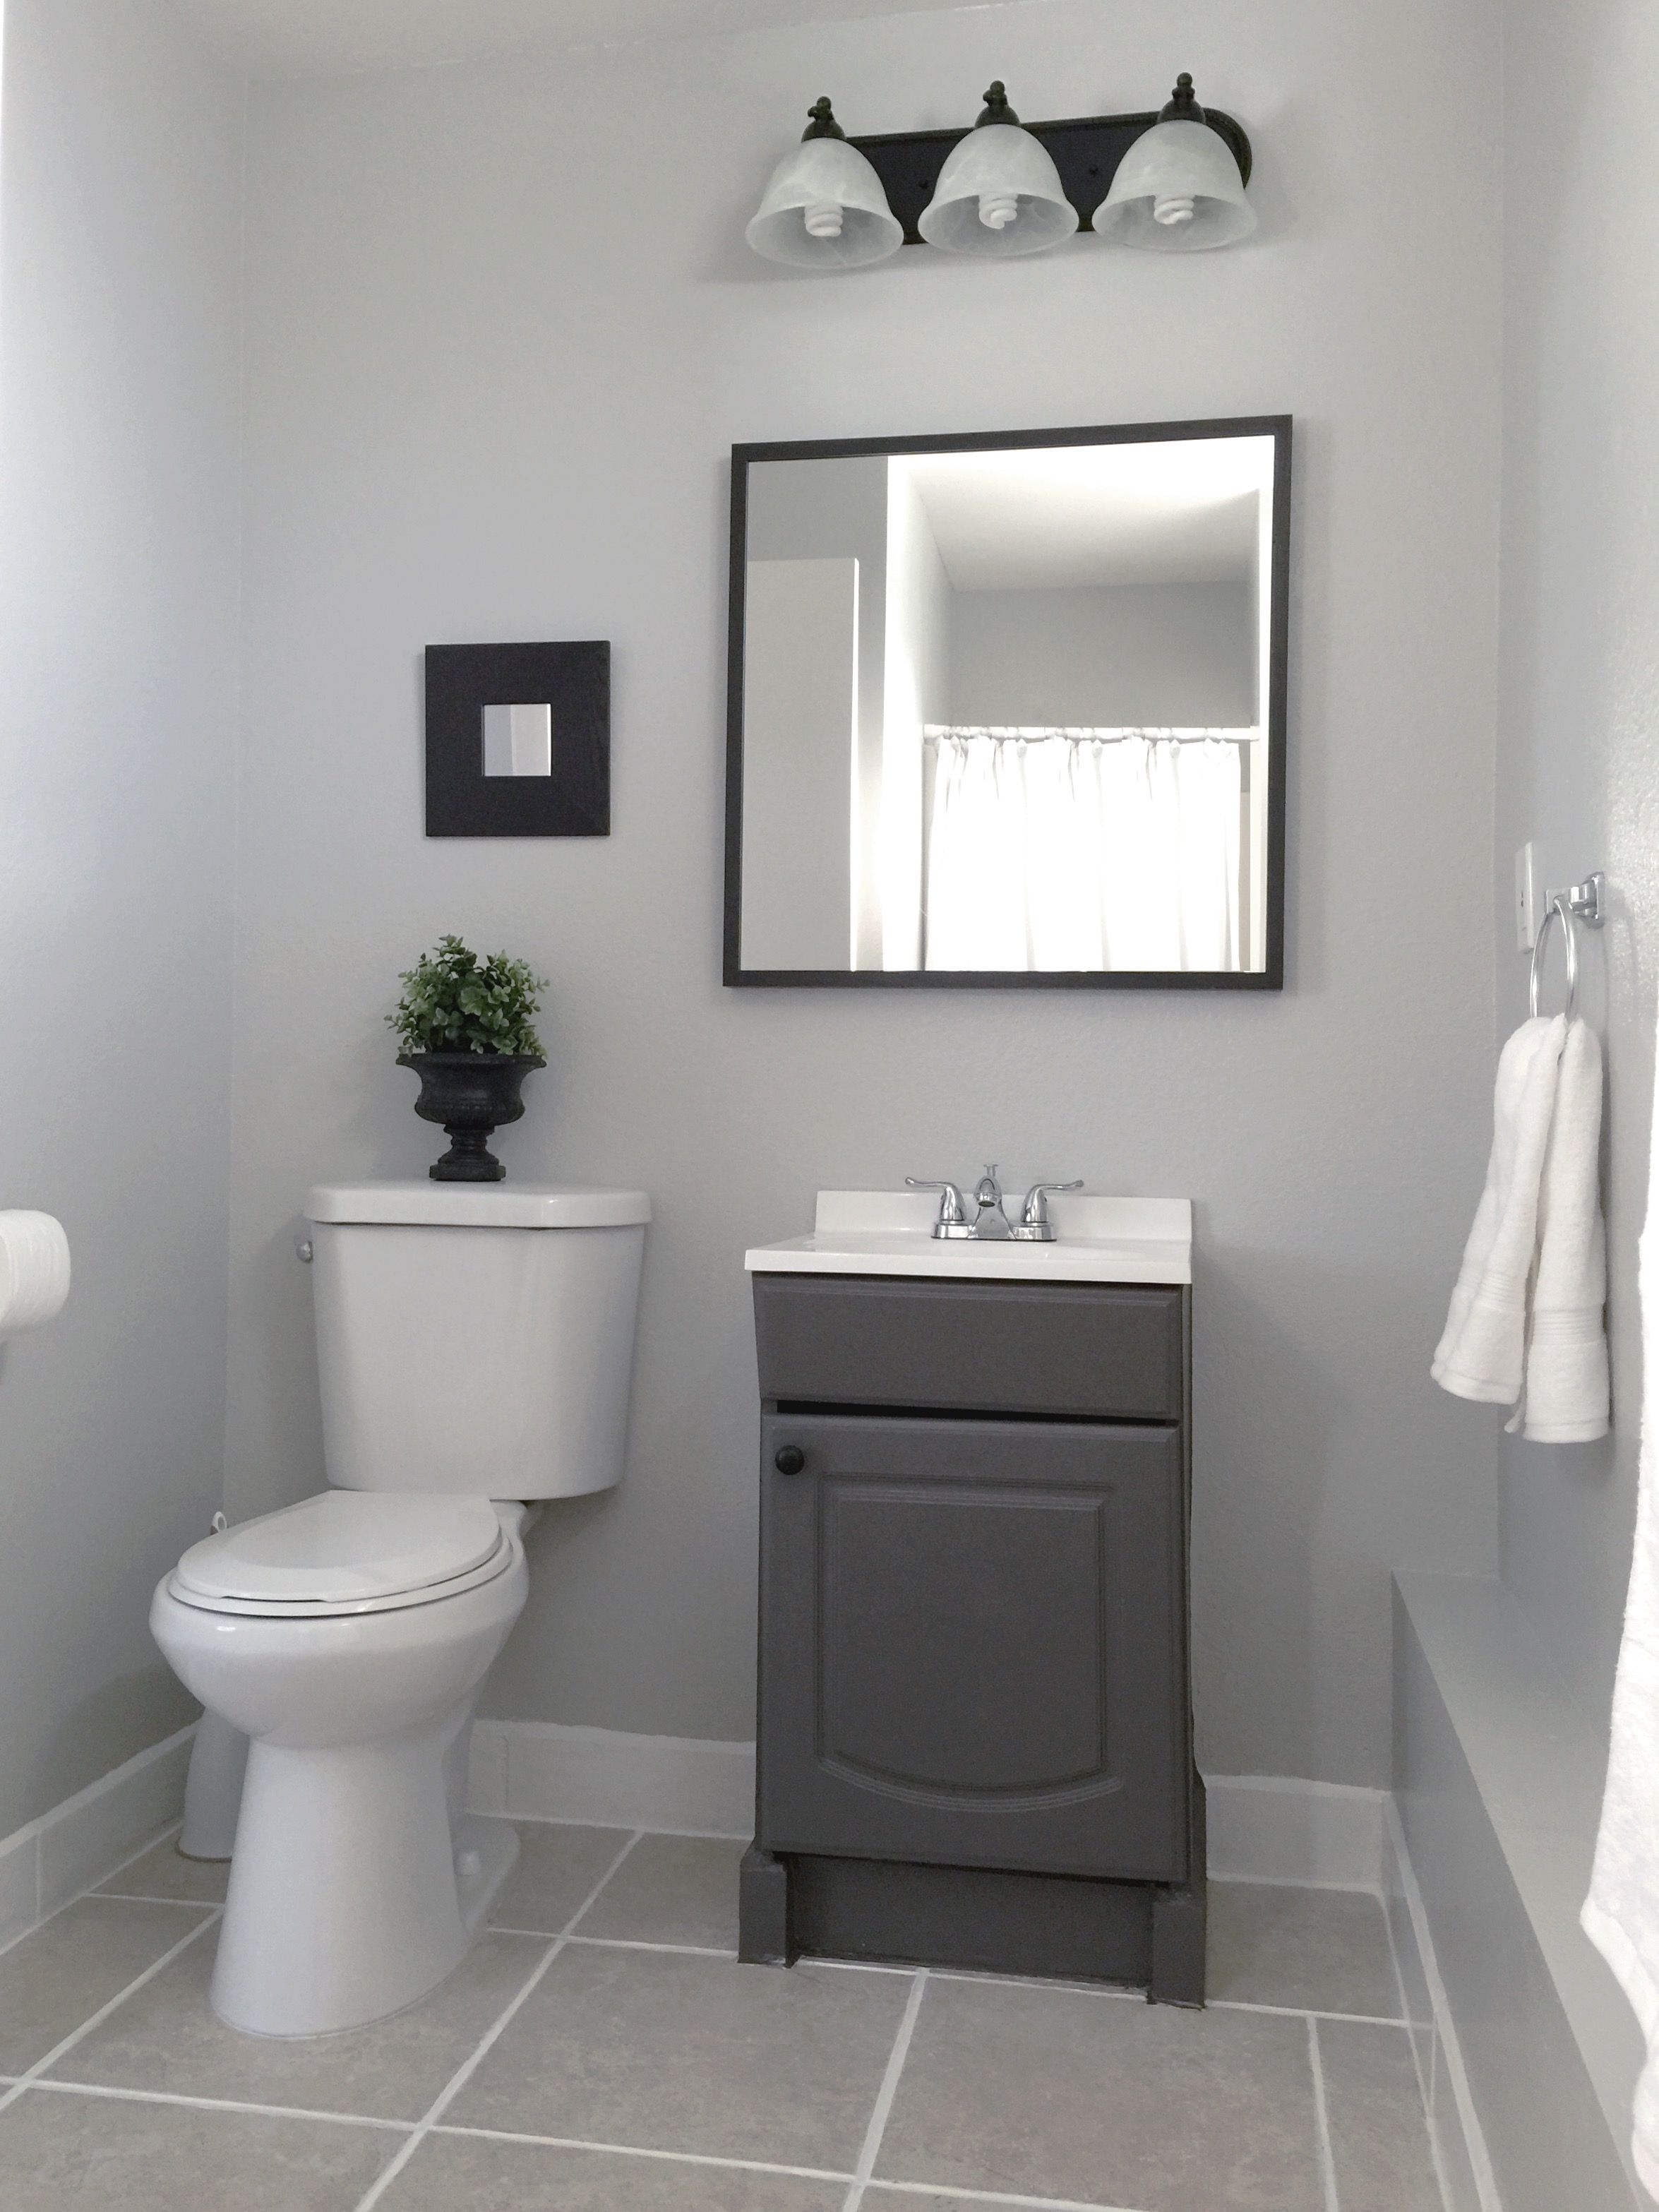 Small Garage Bathroom Painted Vanity Wall Behr Dolphin Fin Gray Wall Light Fixtur Small Bathroom Colors Painting Bathroom Bathroom Paint Colors Behr